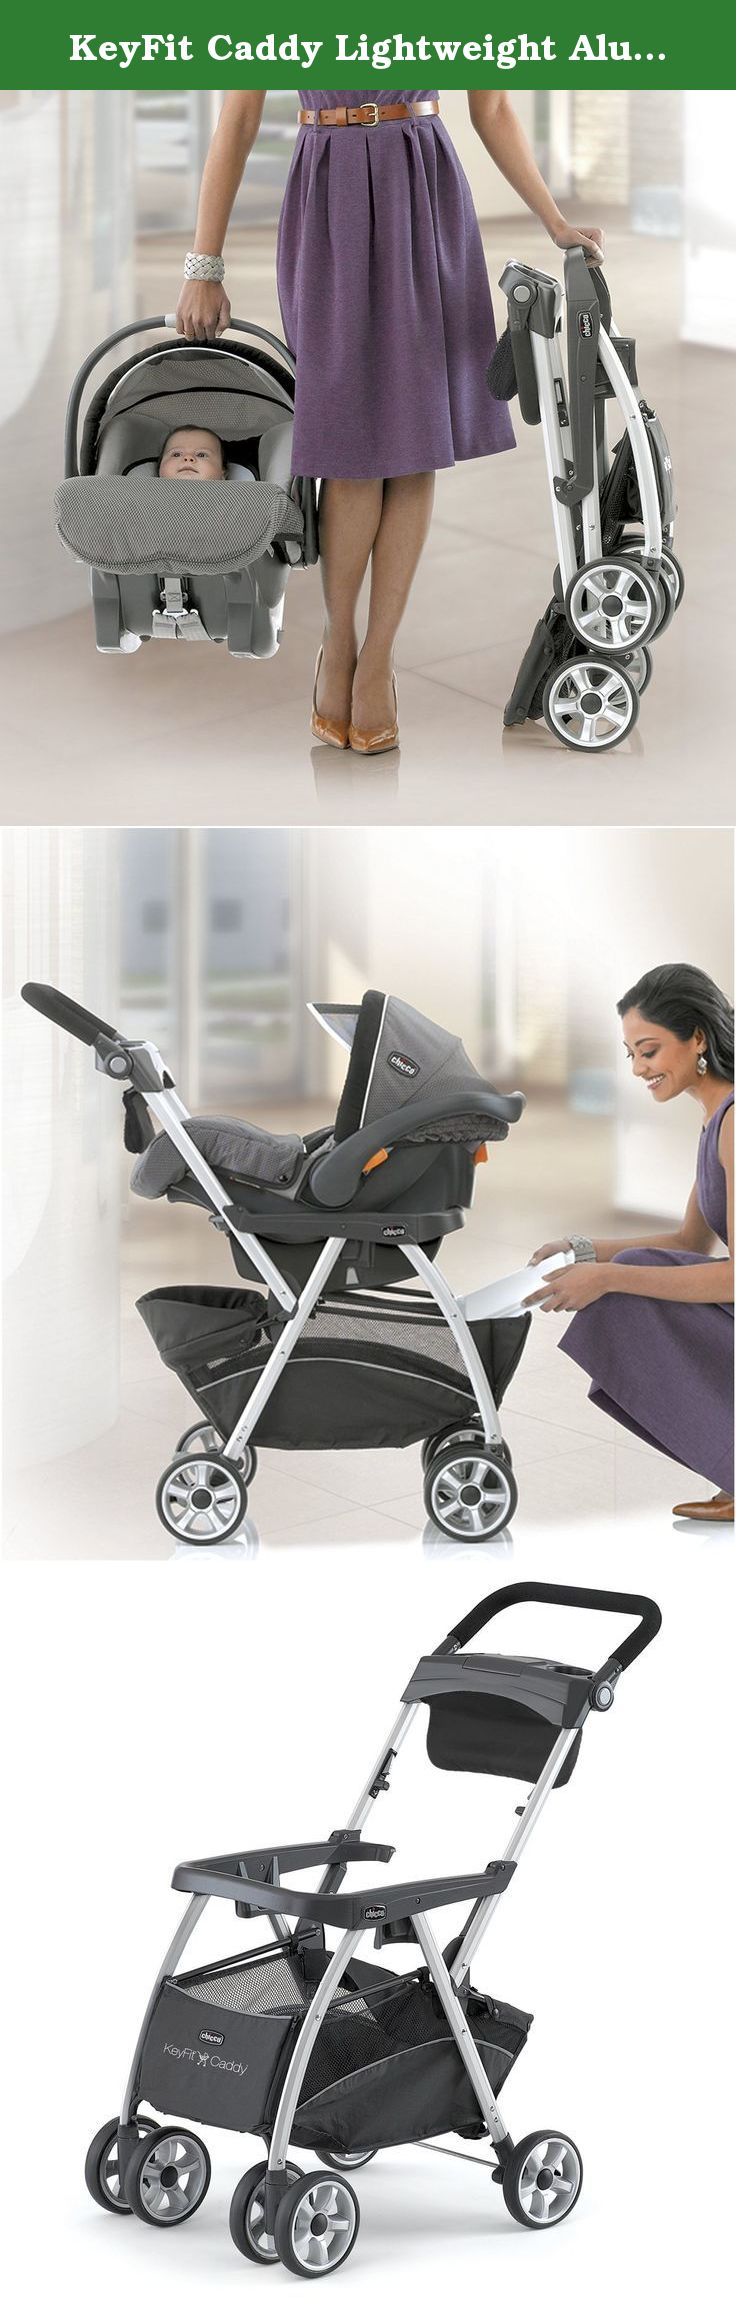 Designed Exclusively For The KeyFit Caddy Infant Car Seat Chicco Lightweight Aluminum Carrier Stroller